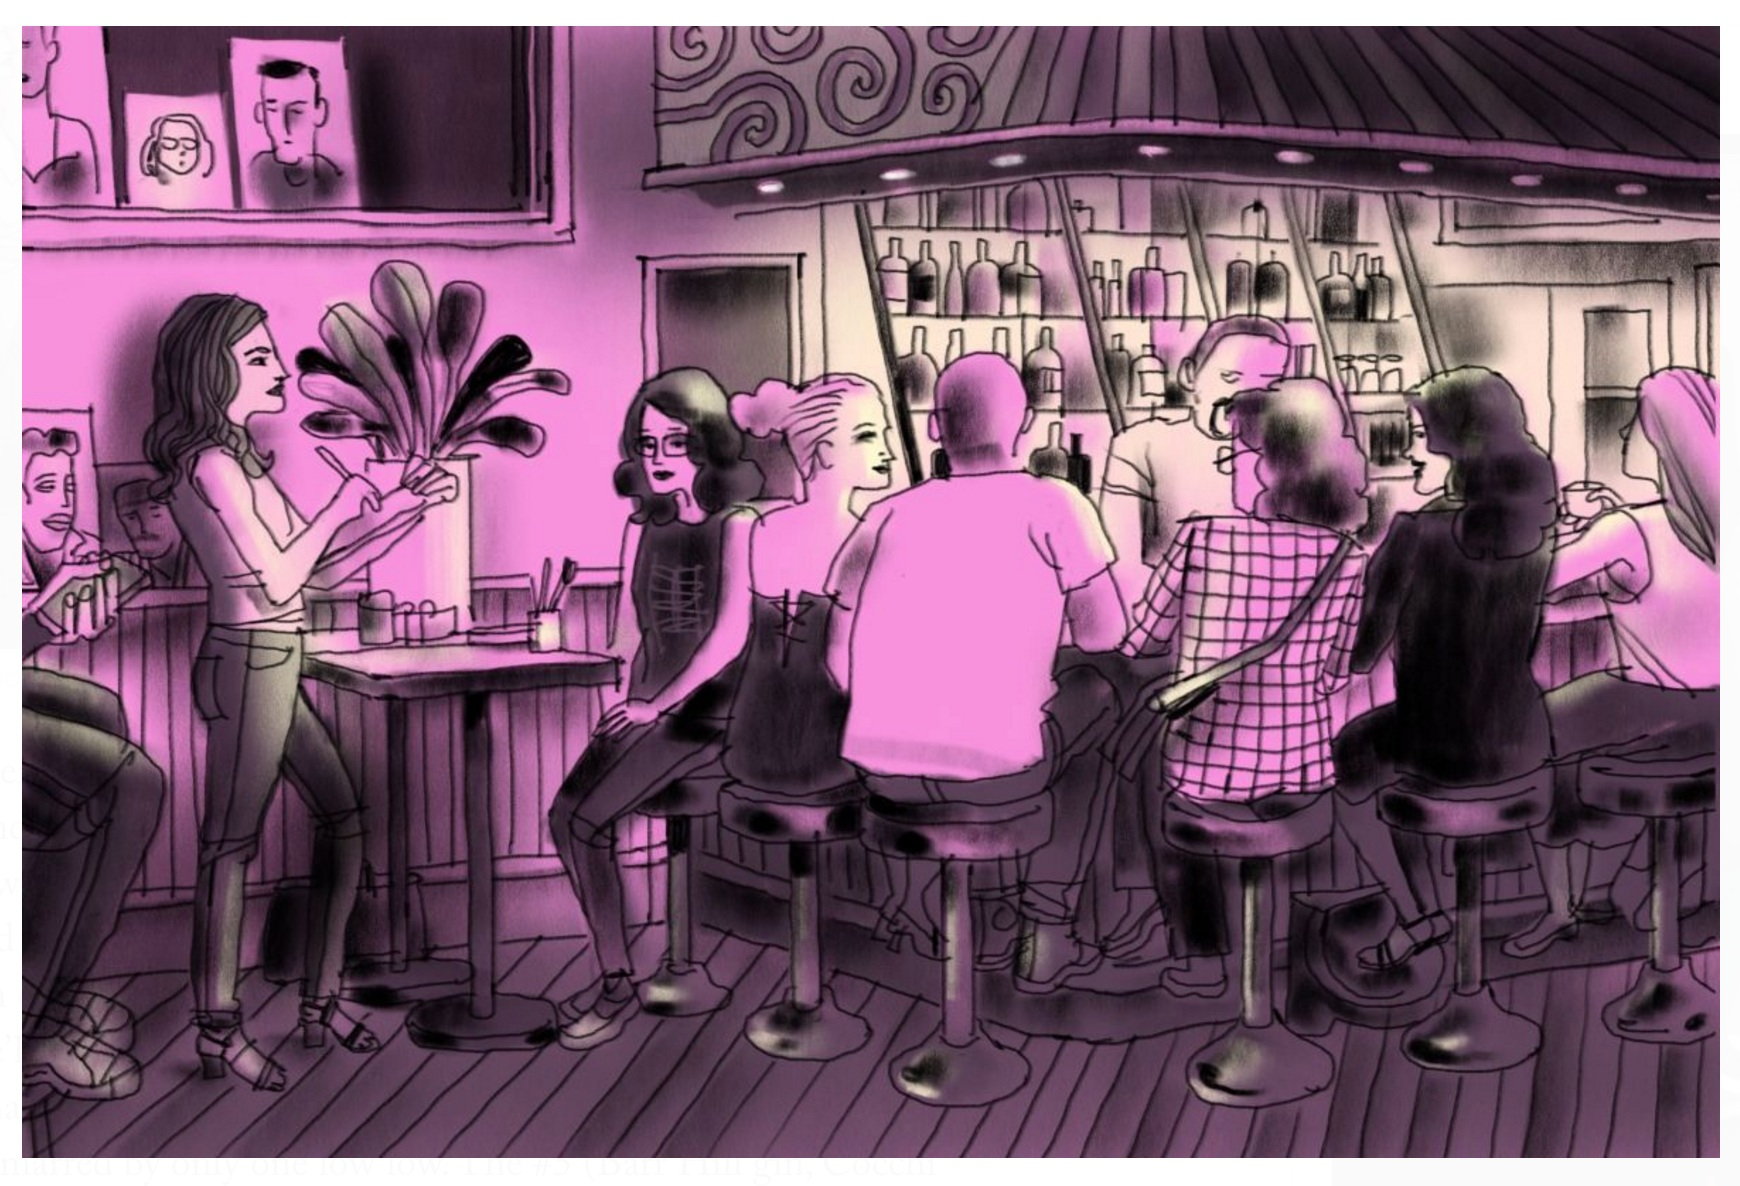 I was captured doing portraits at King Tai in  The New Yorker  by illustrator  Jorge Columbo  and can die happy.